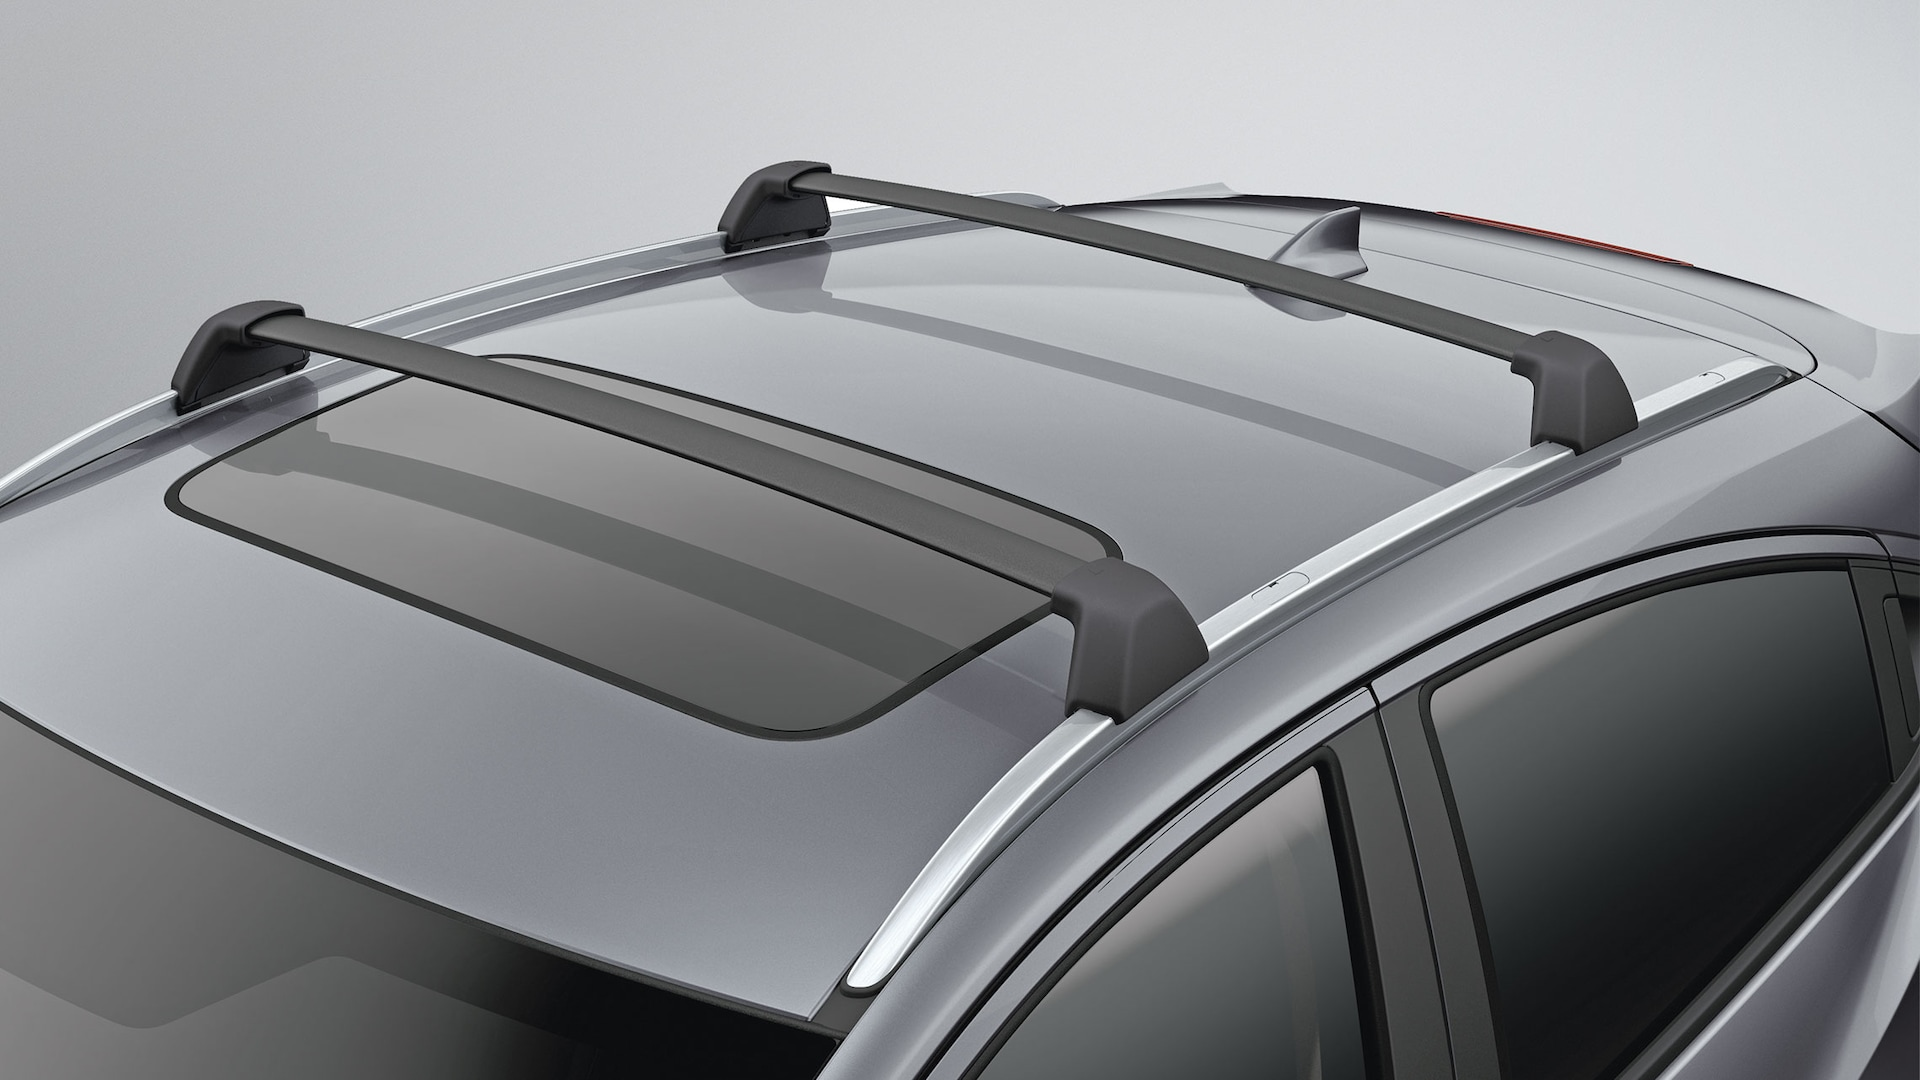 Detail of accessory fender flare on the 2019 Honda Passport.